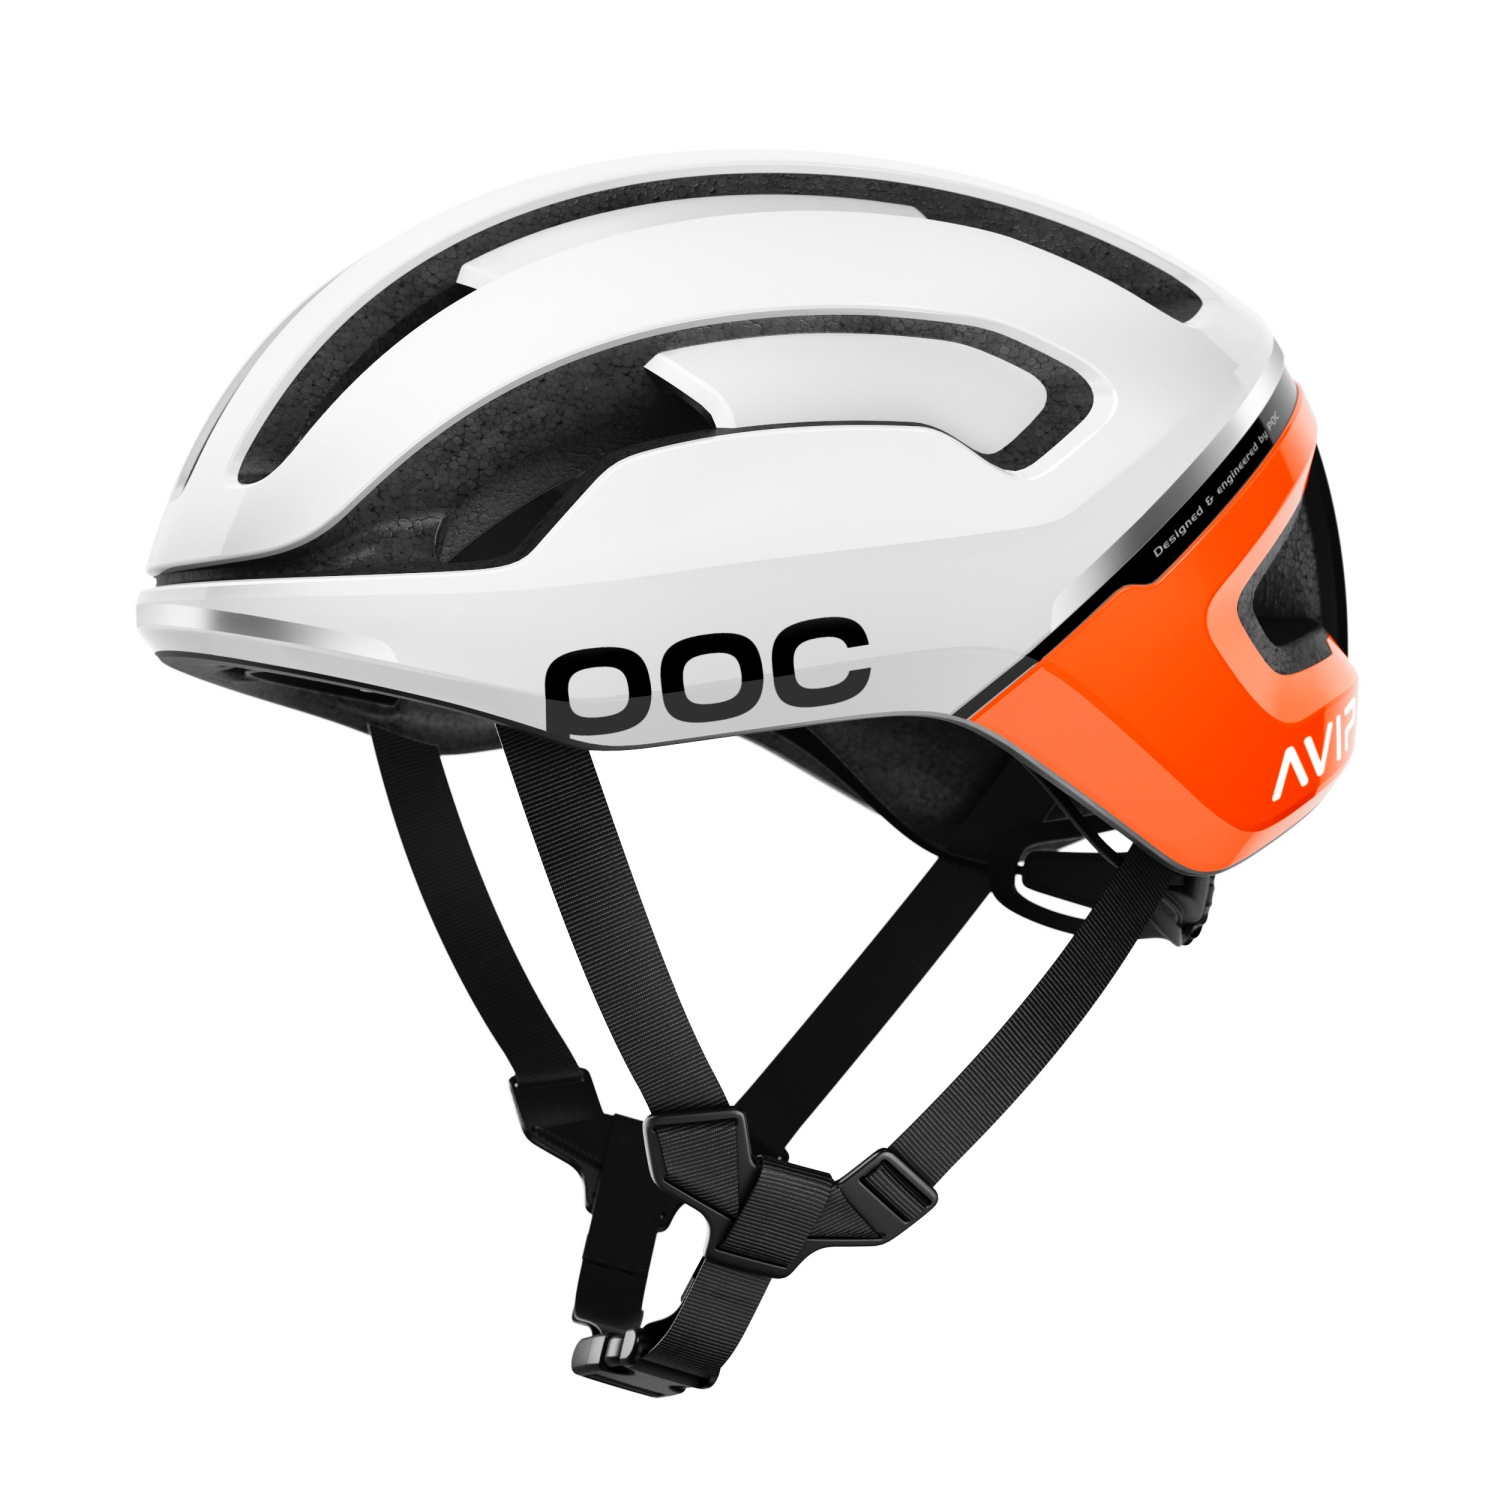 poc omne air spin helmet and new apparel launched road bike news reviews and photos. Black Bedroom Furniture Sets. Home Design Ideas